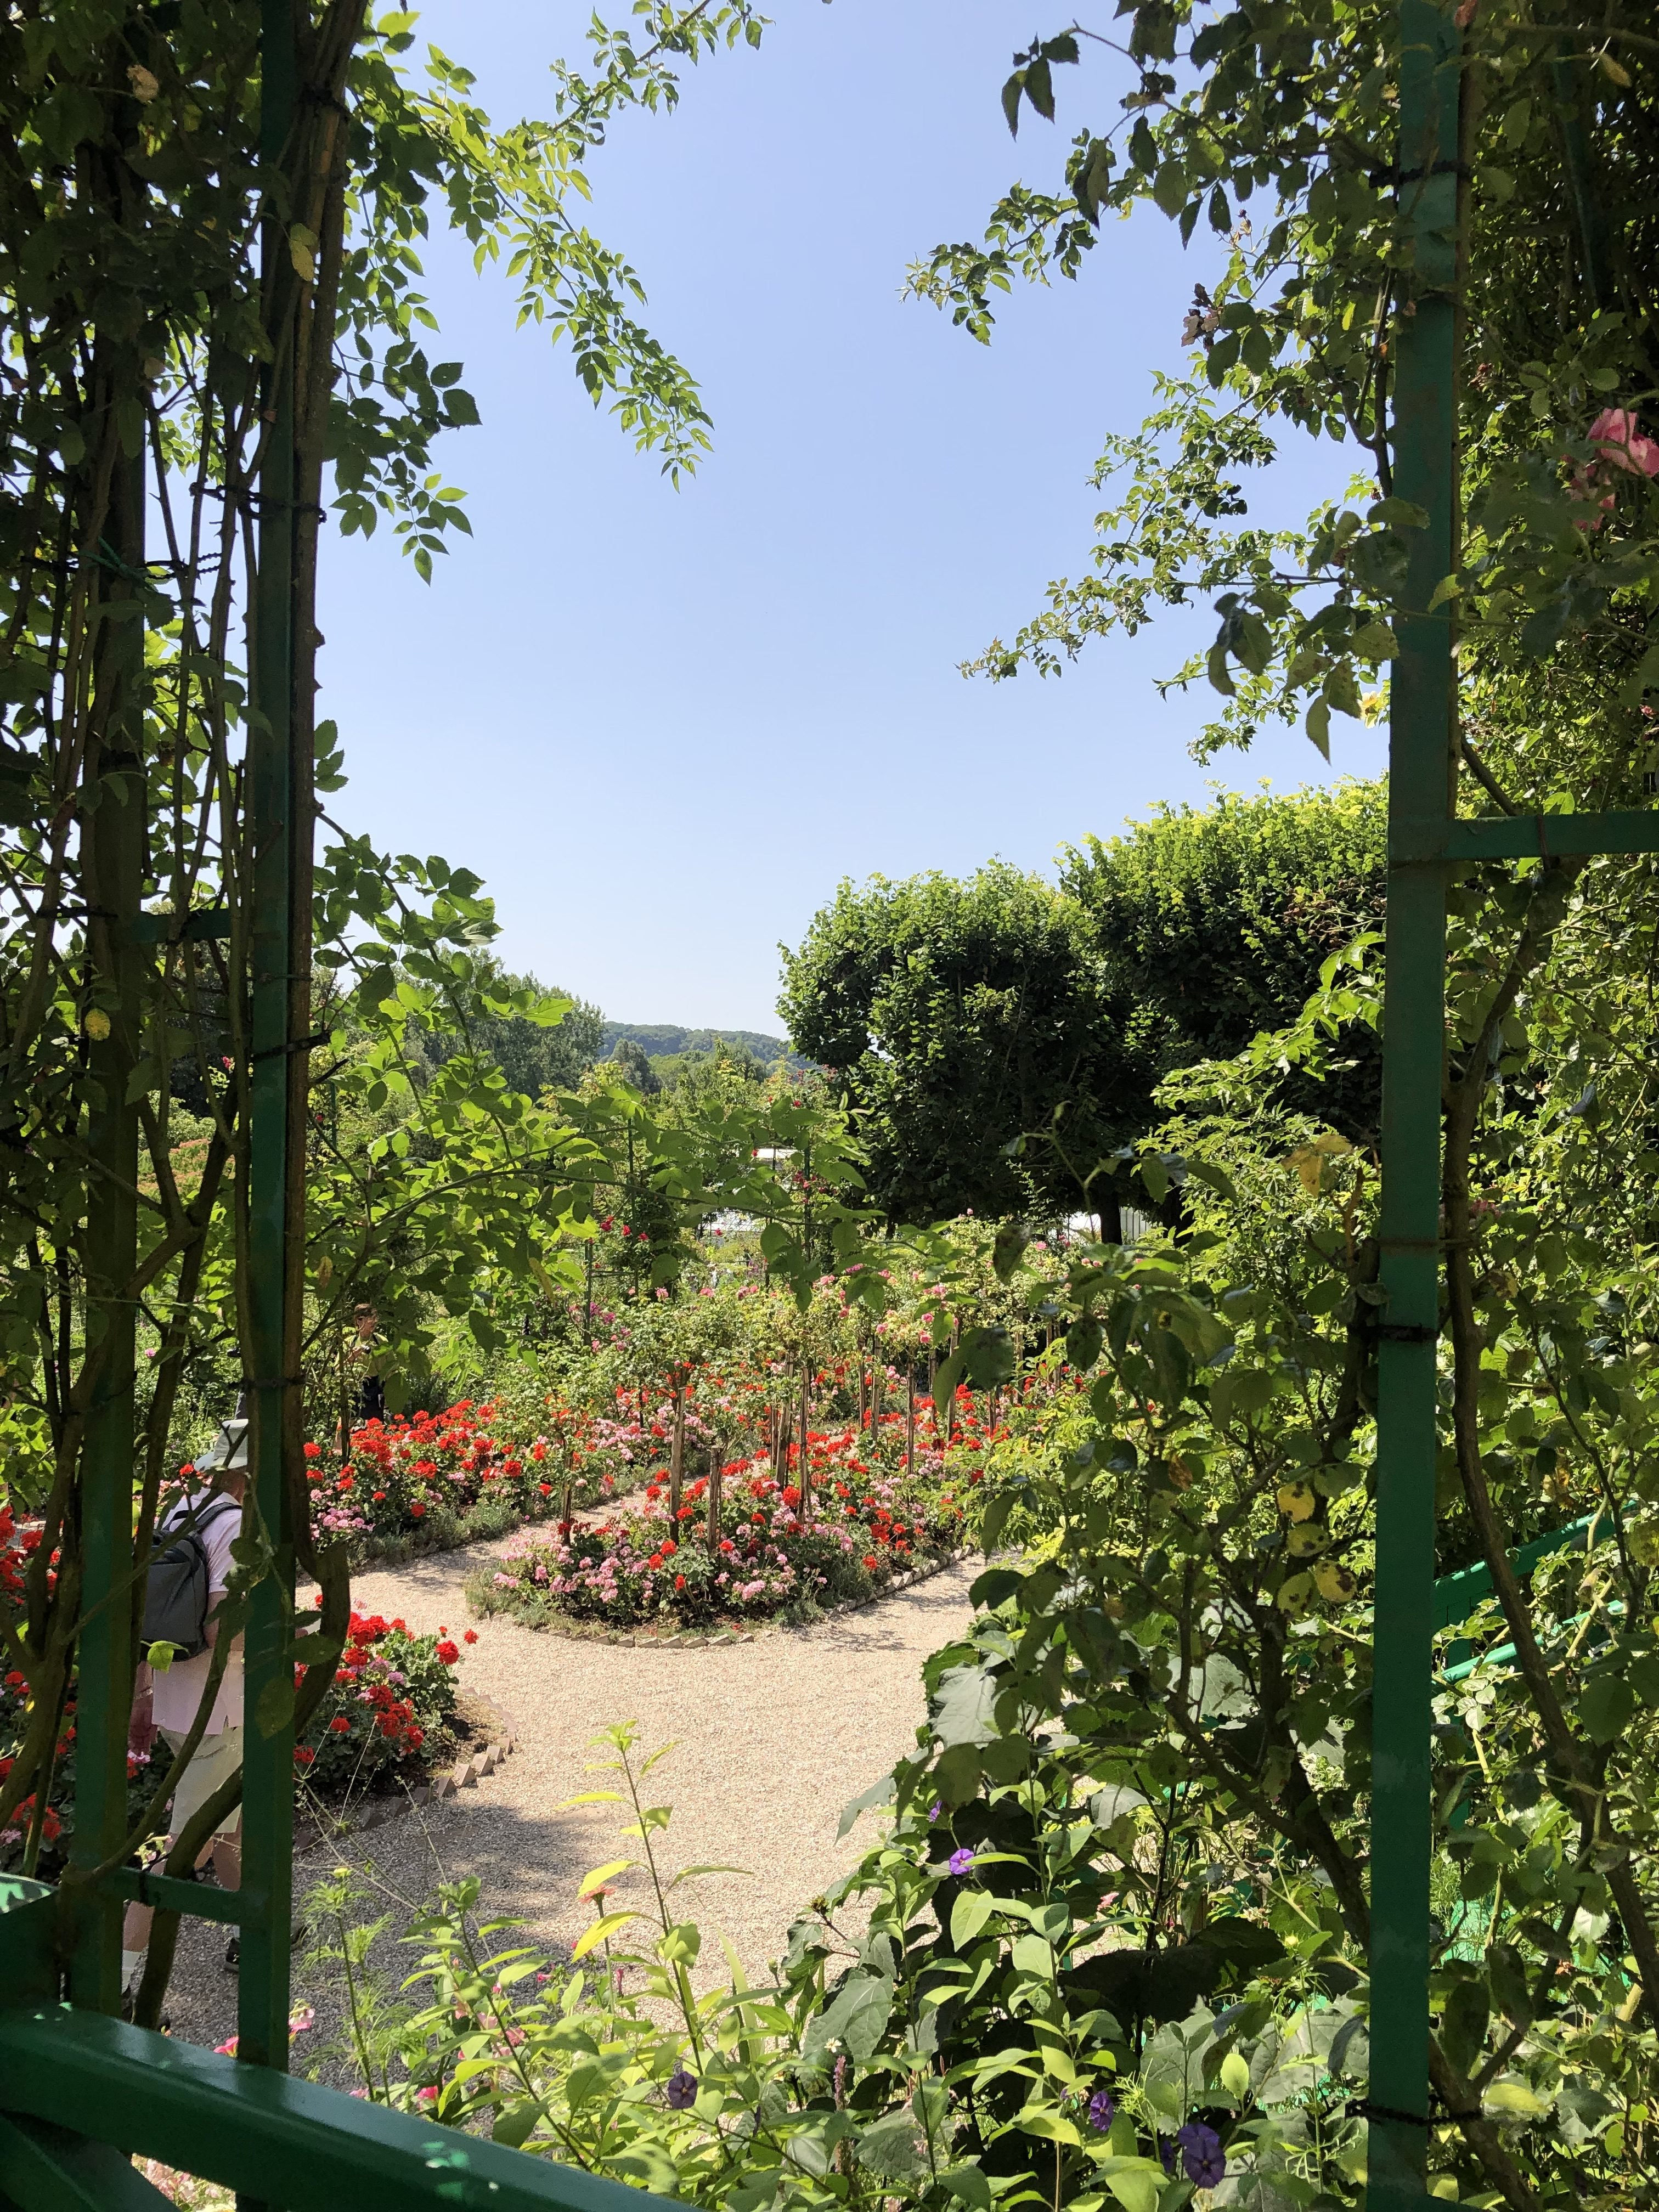 The windows from the house had the must spectacular views of Claude Monet's Gardens in Giverny France.